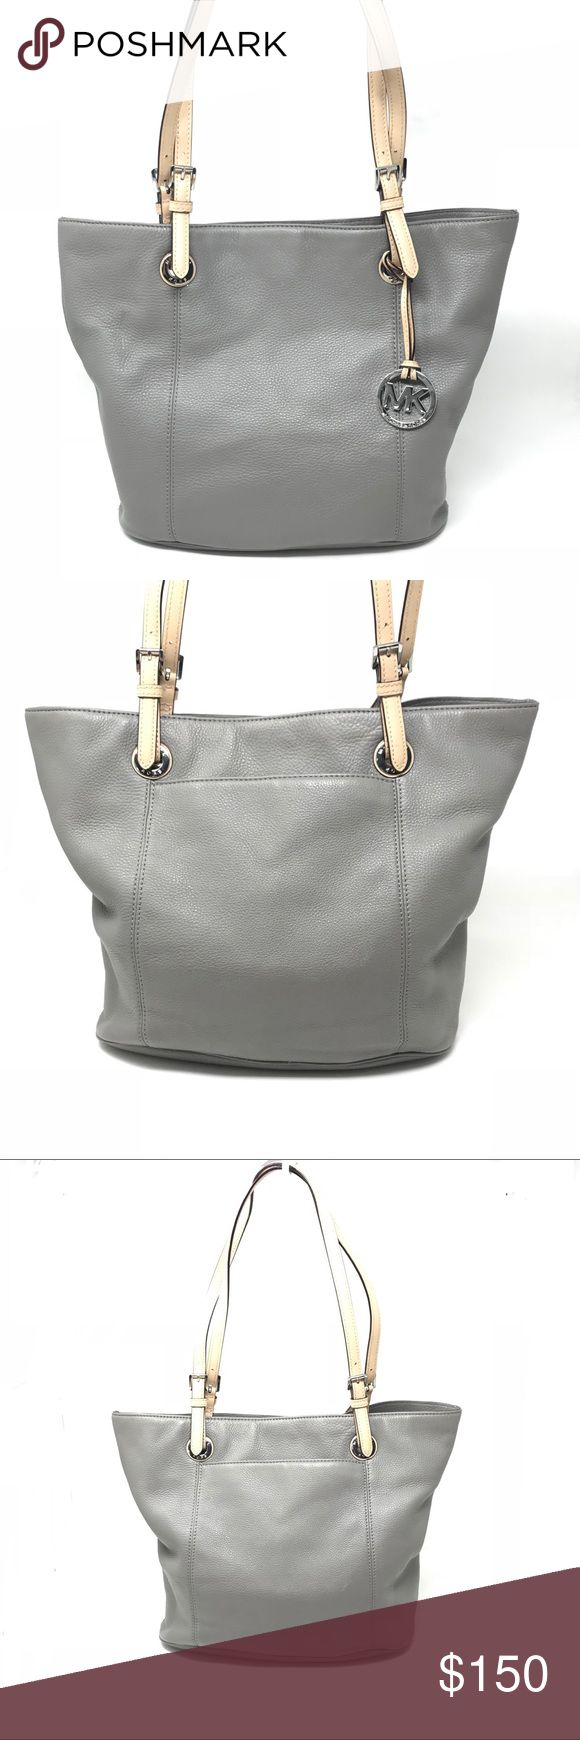 "Michael Kors like new Jet Set Gray Leather Tote •Michael Kors Jet Set Large tote, gray genuine leather with beige strap •style # 38F2CTTT7L •Condition: Like new - only used a few times •Any flaws: no - perfect condition •Size: bag: approx 17"" @ top, 12"" @ bottom, bag height: 11.5""; bag depth: approx 5.5"" •Strap drop: Approx 10"", adjustable but never adjusted from purchase •Closure: Metal, magnetic •Follow me on IG for sneak peeks before new items go live! @myjeanmarie.posh.closet •Comes from…"